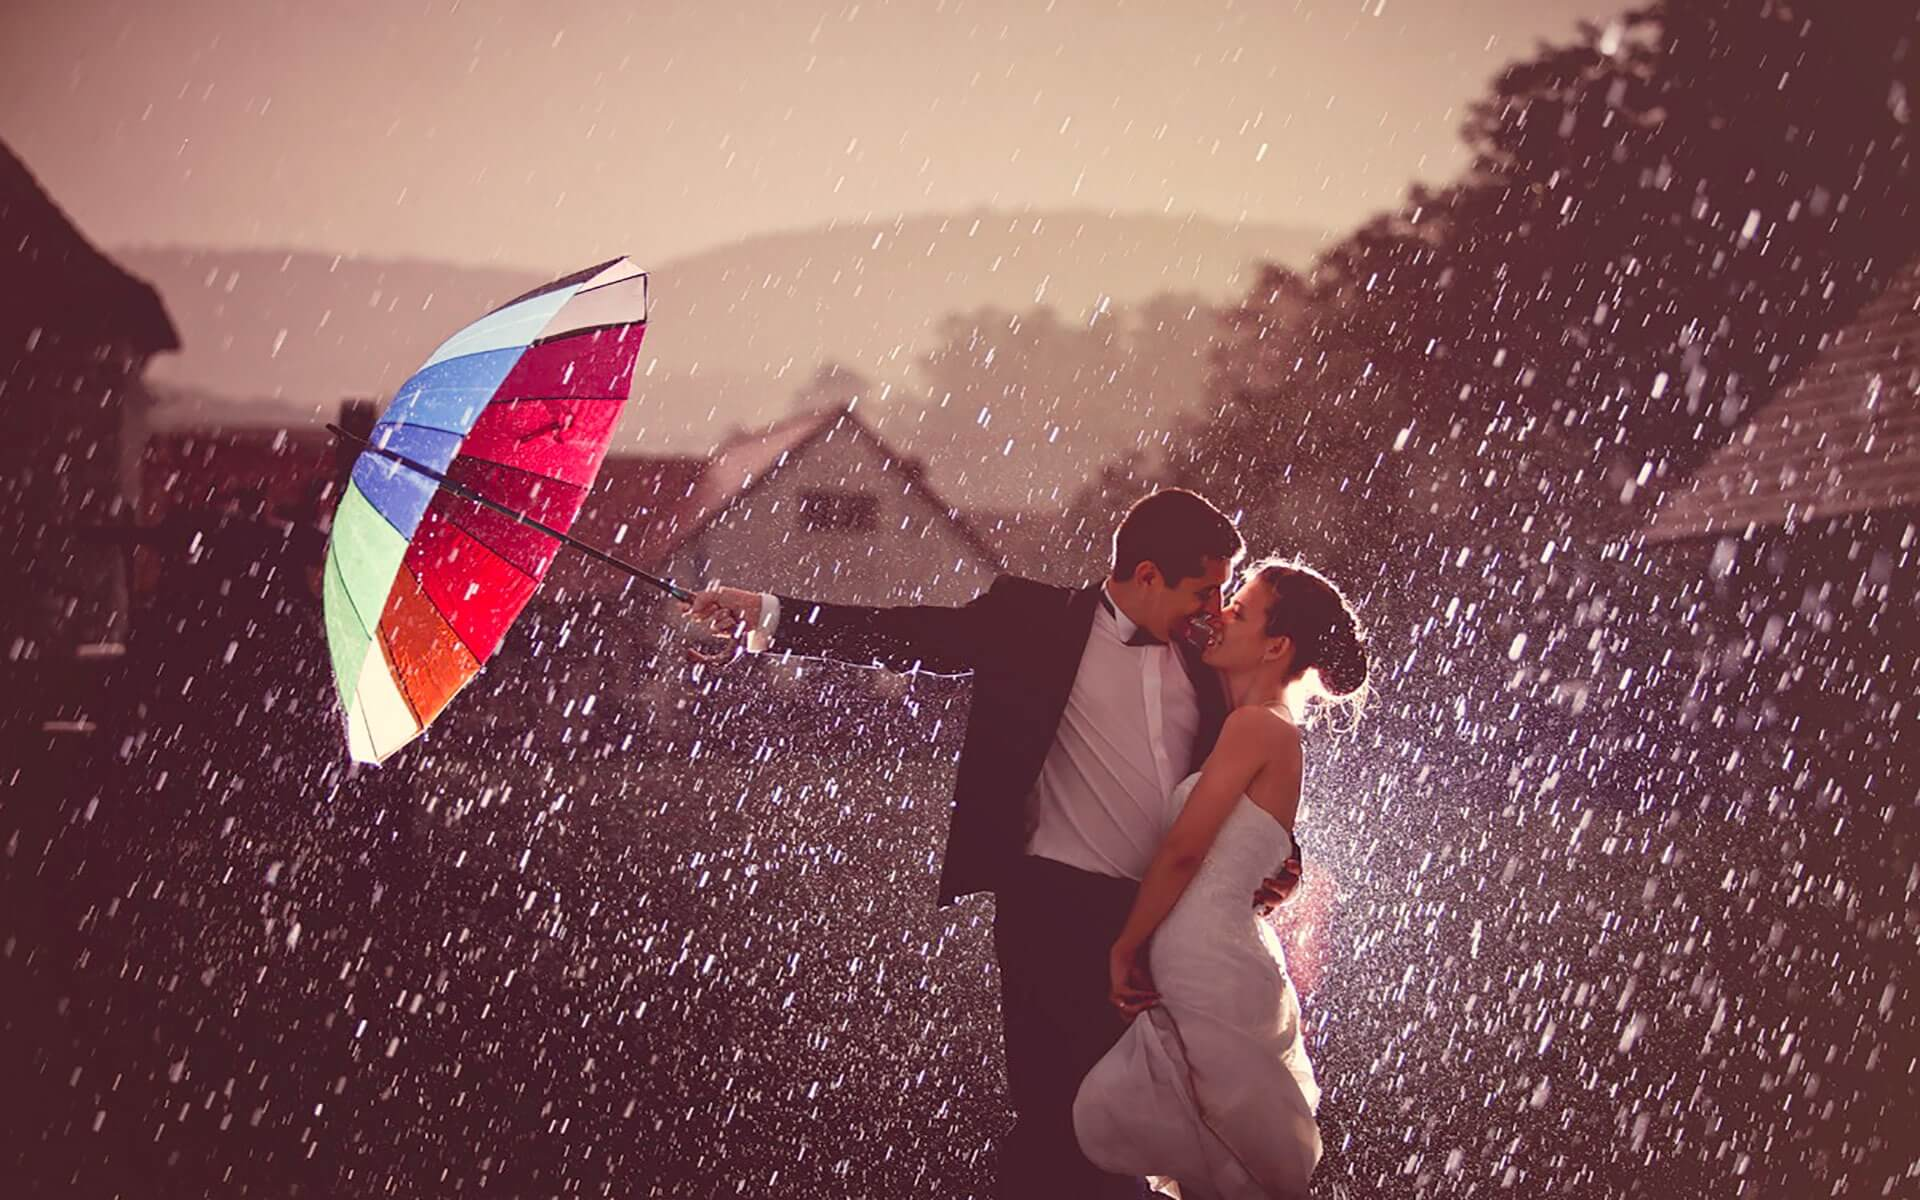 cute HD Love and Romance Pictures Of couples In Rain EntertainmentMesh